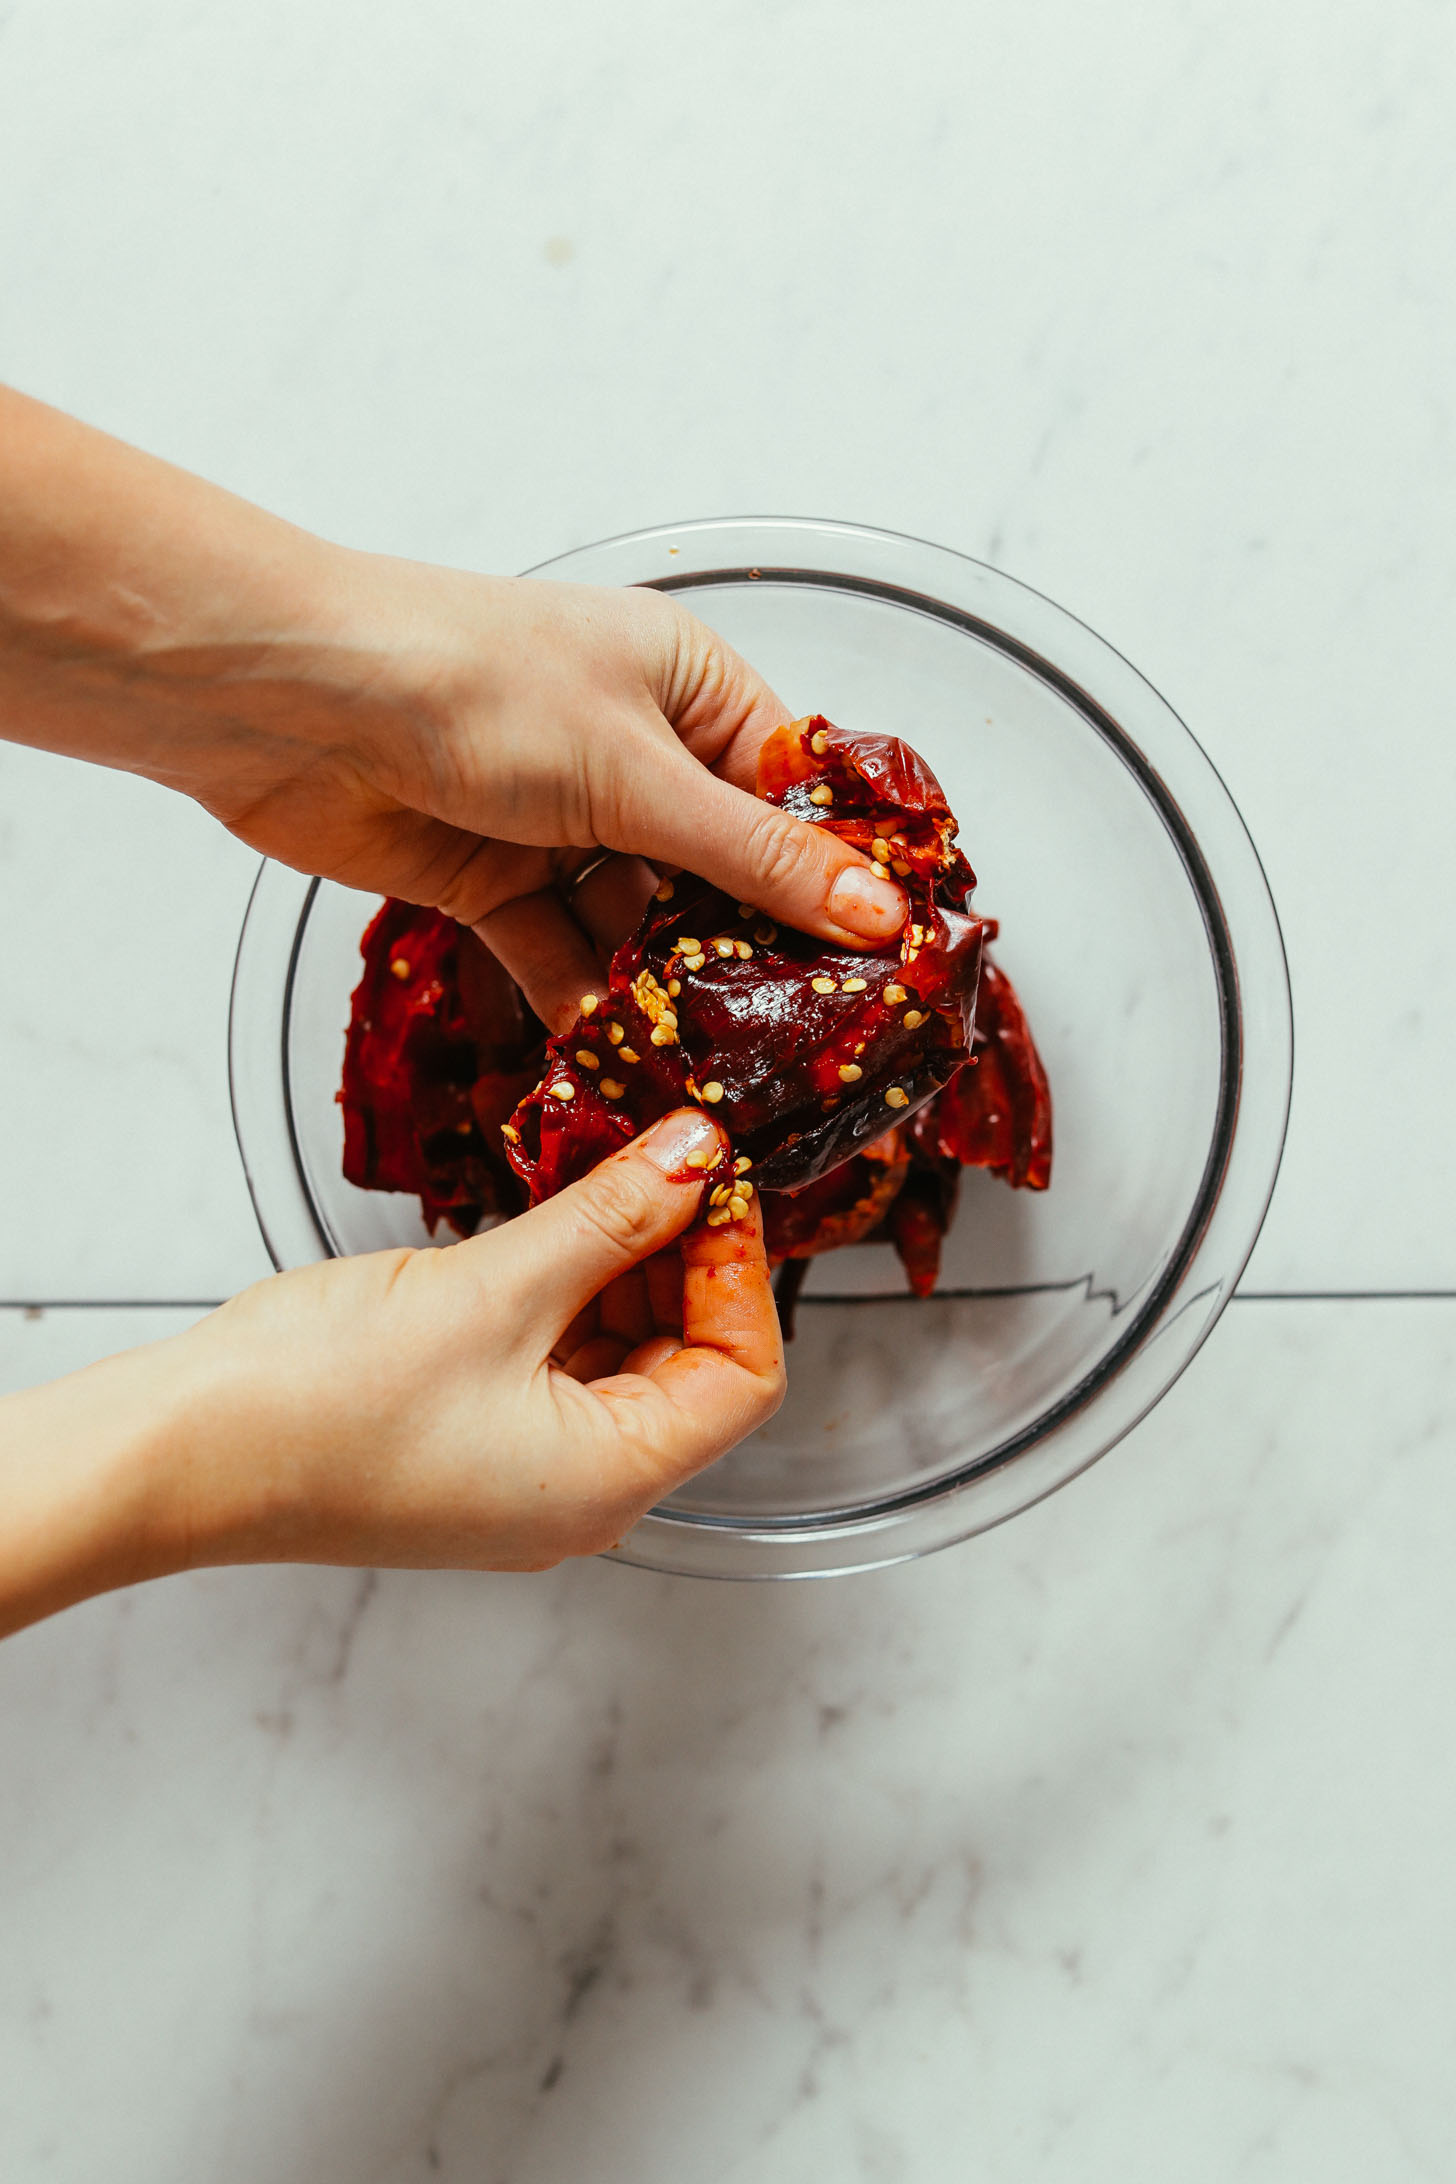 Showing how to remove the seeds from soaked peppers for making our DIY Harissa Paste recipe